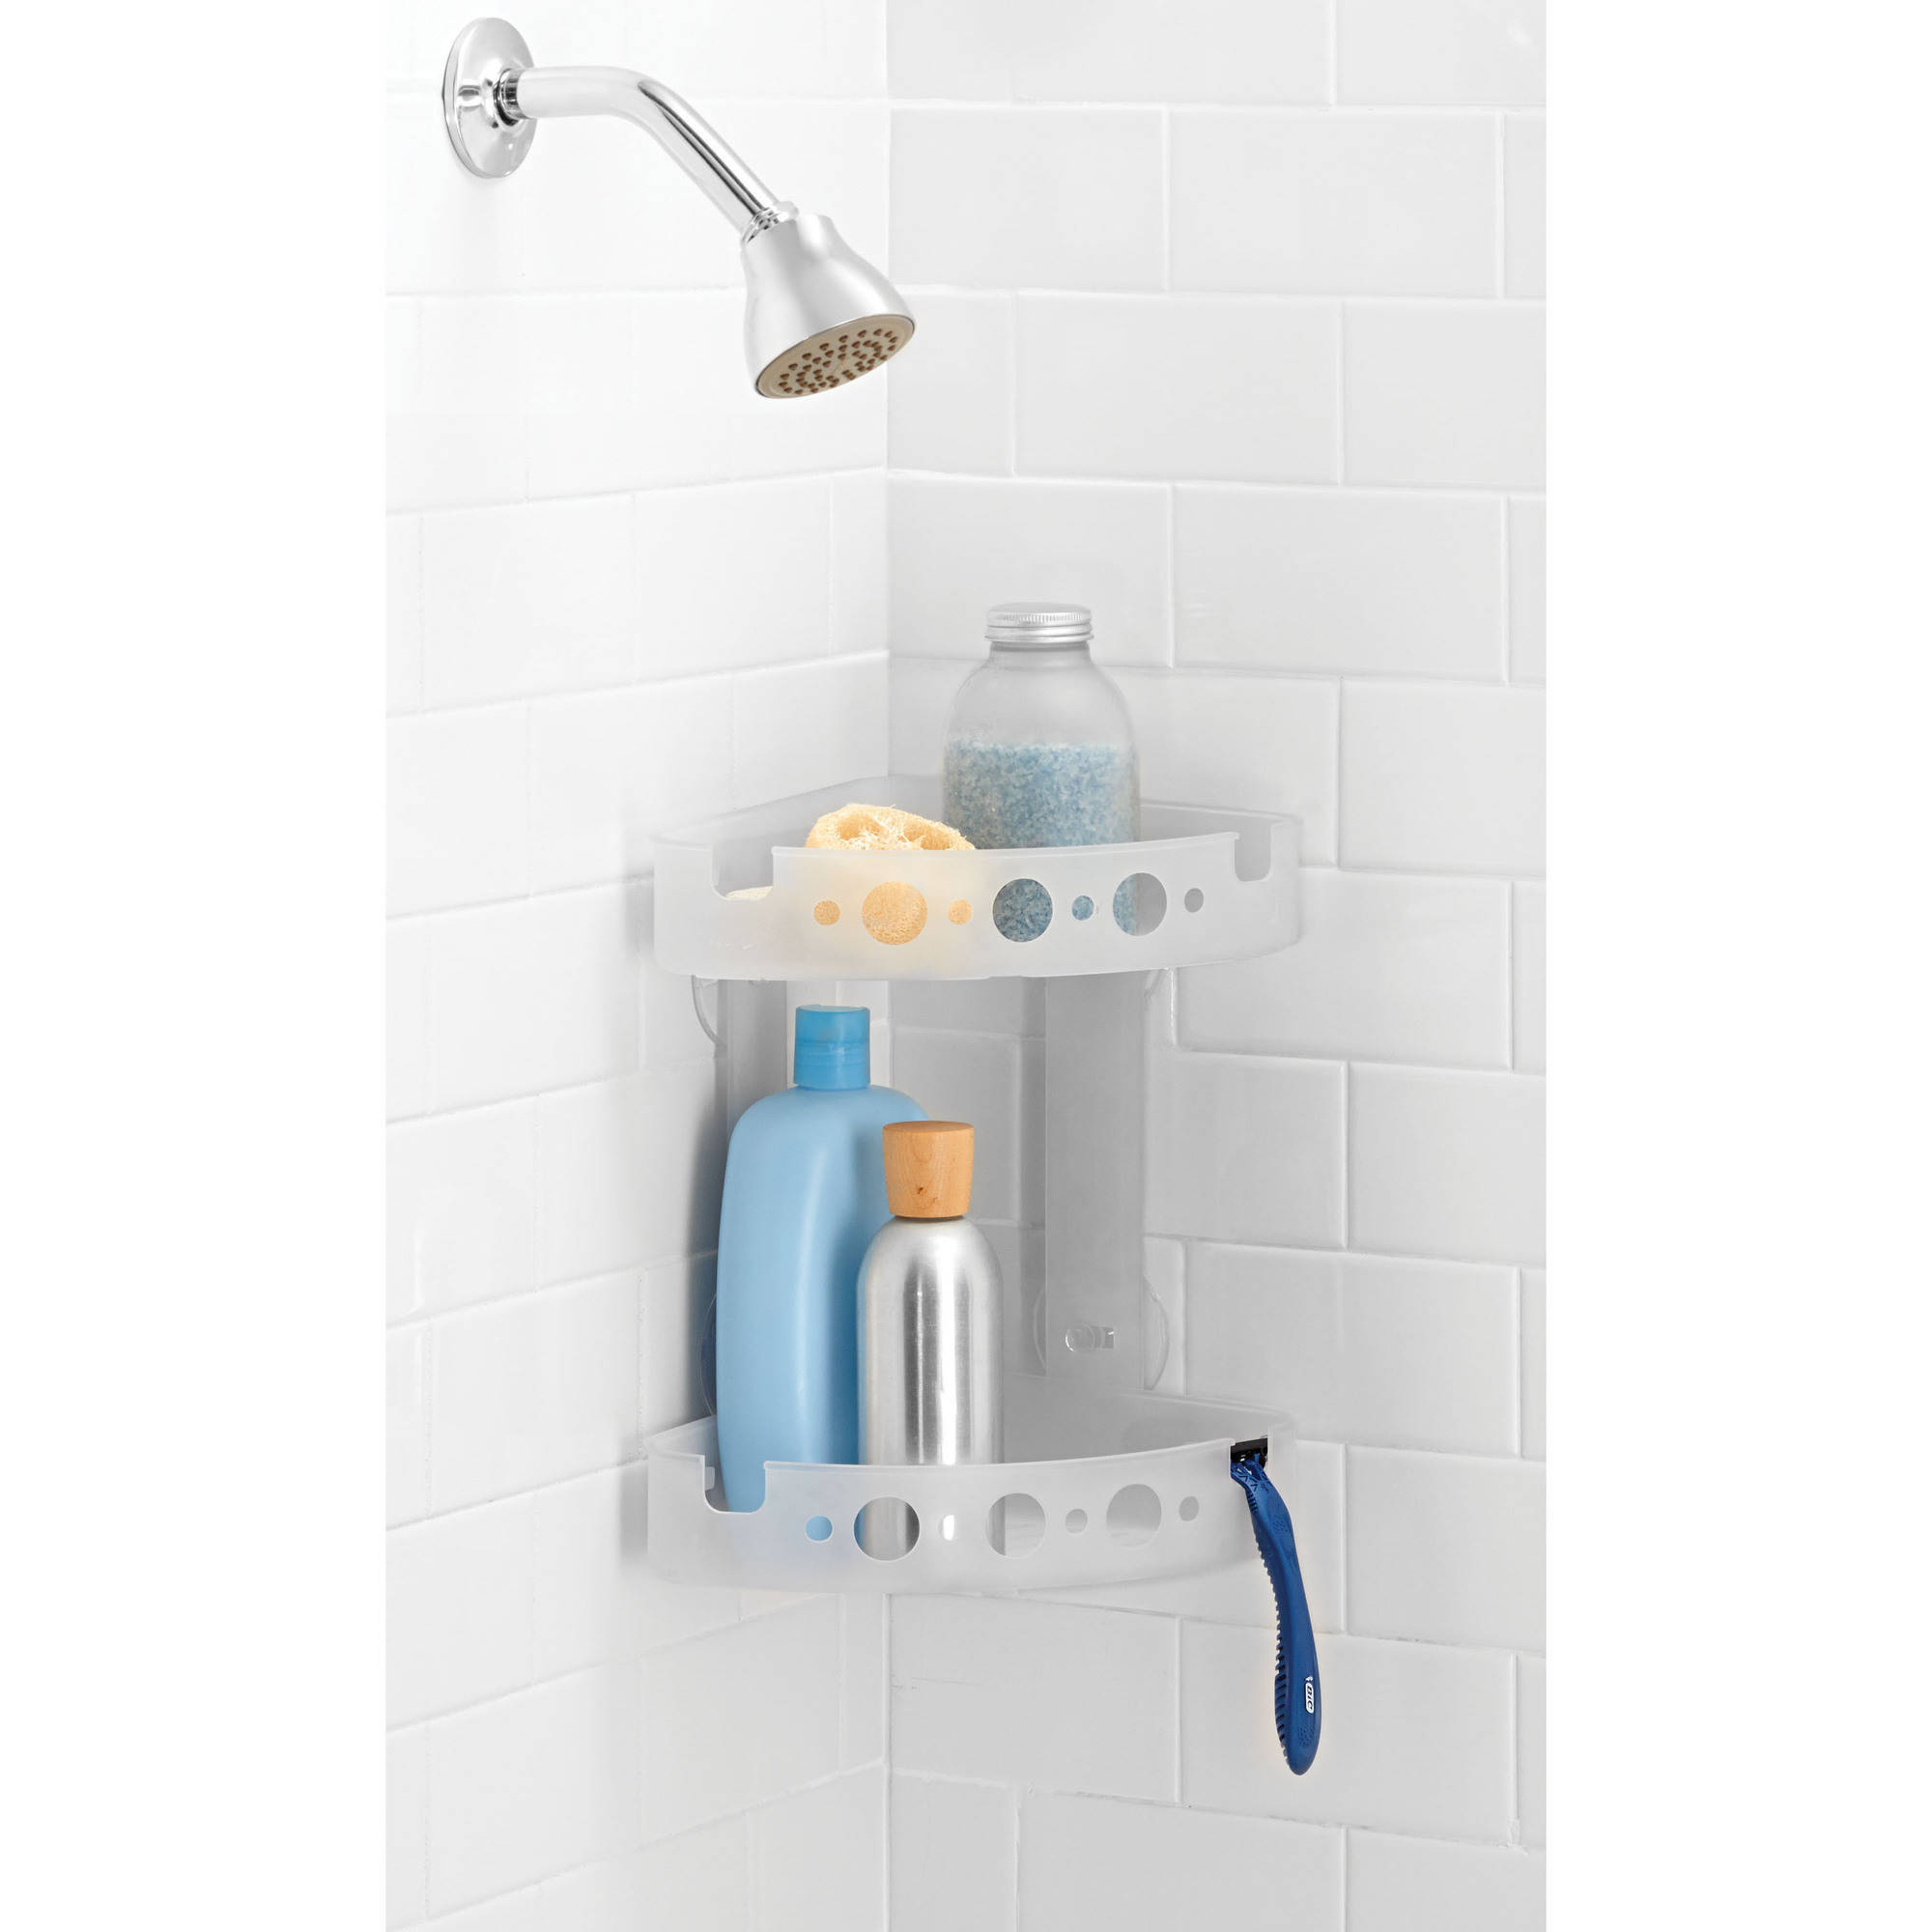 Mainstays Corner Shower Caddy, Frosted - Walmart.com